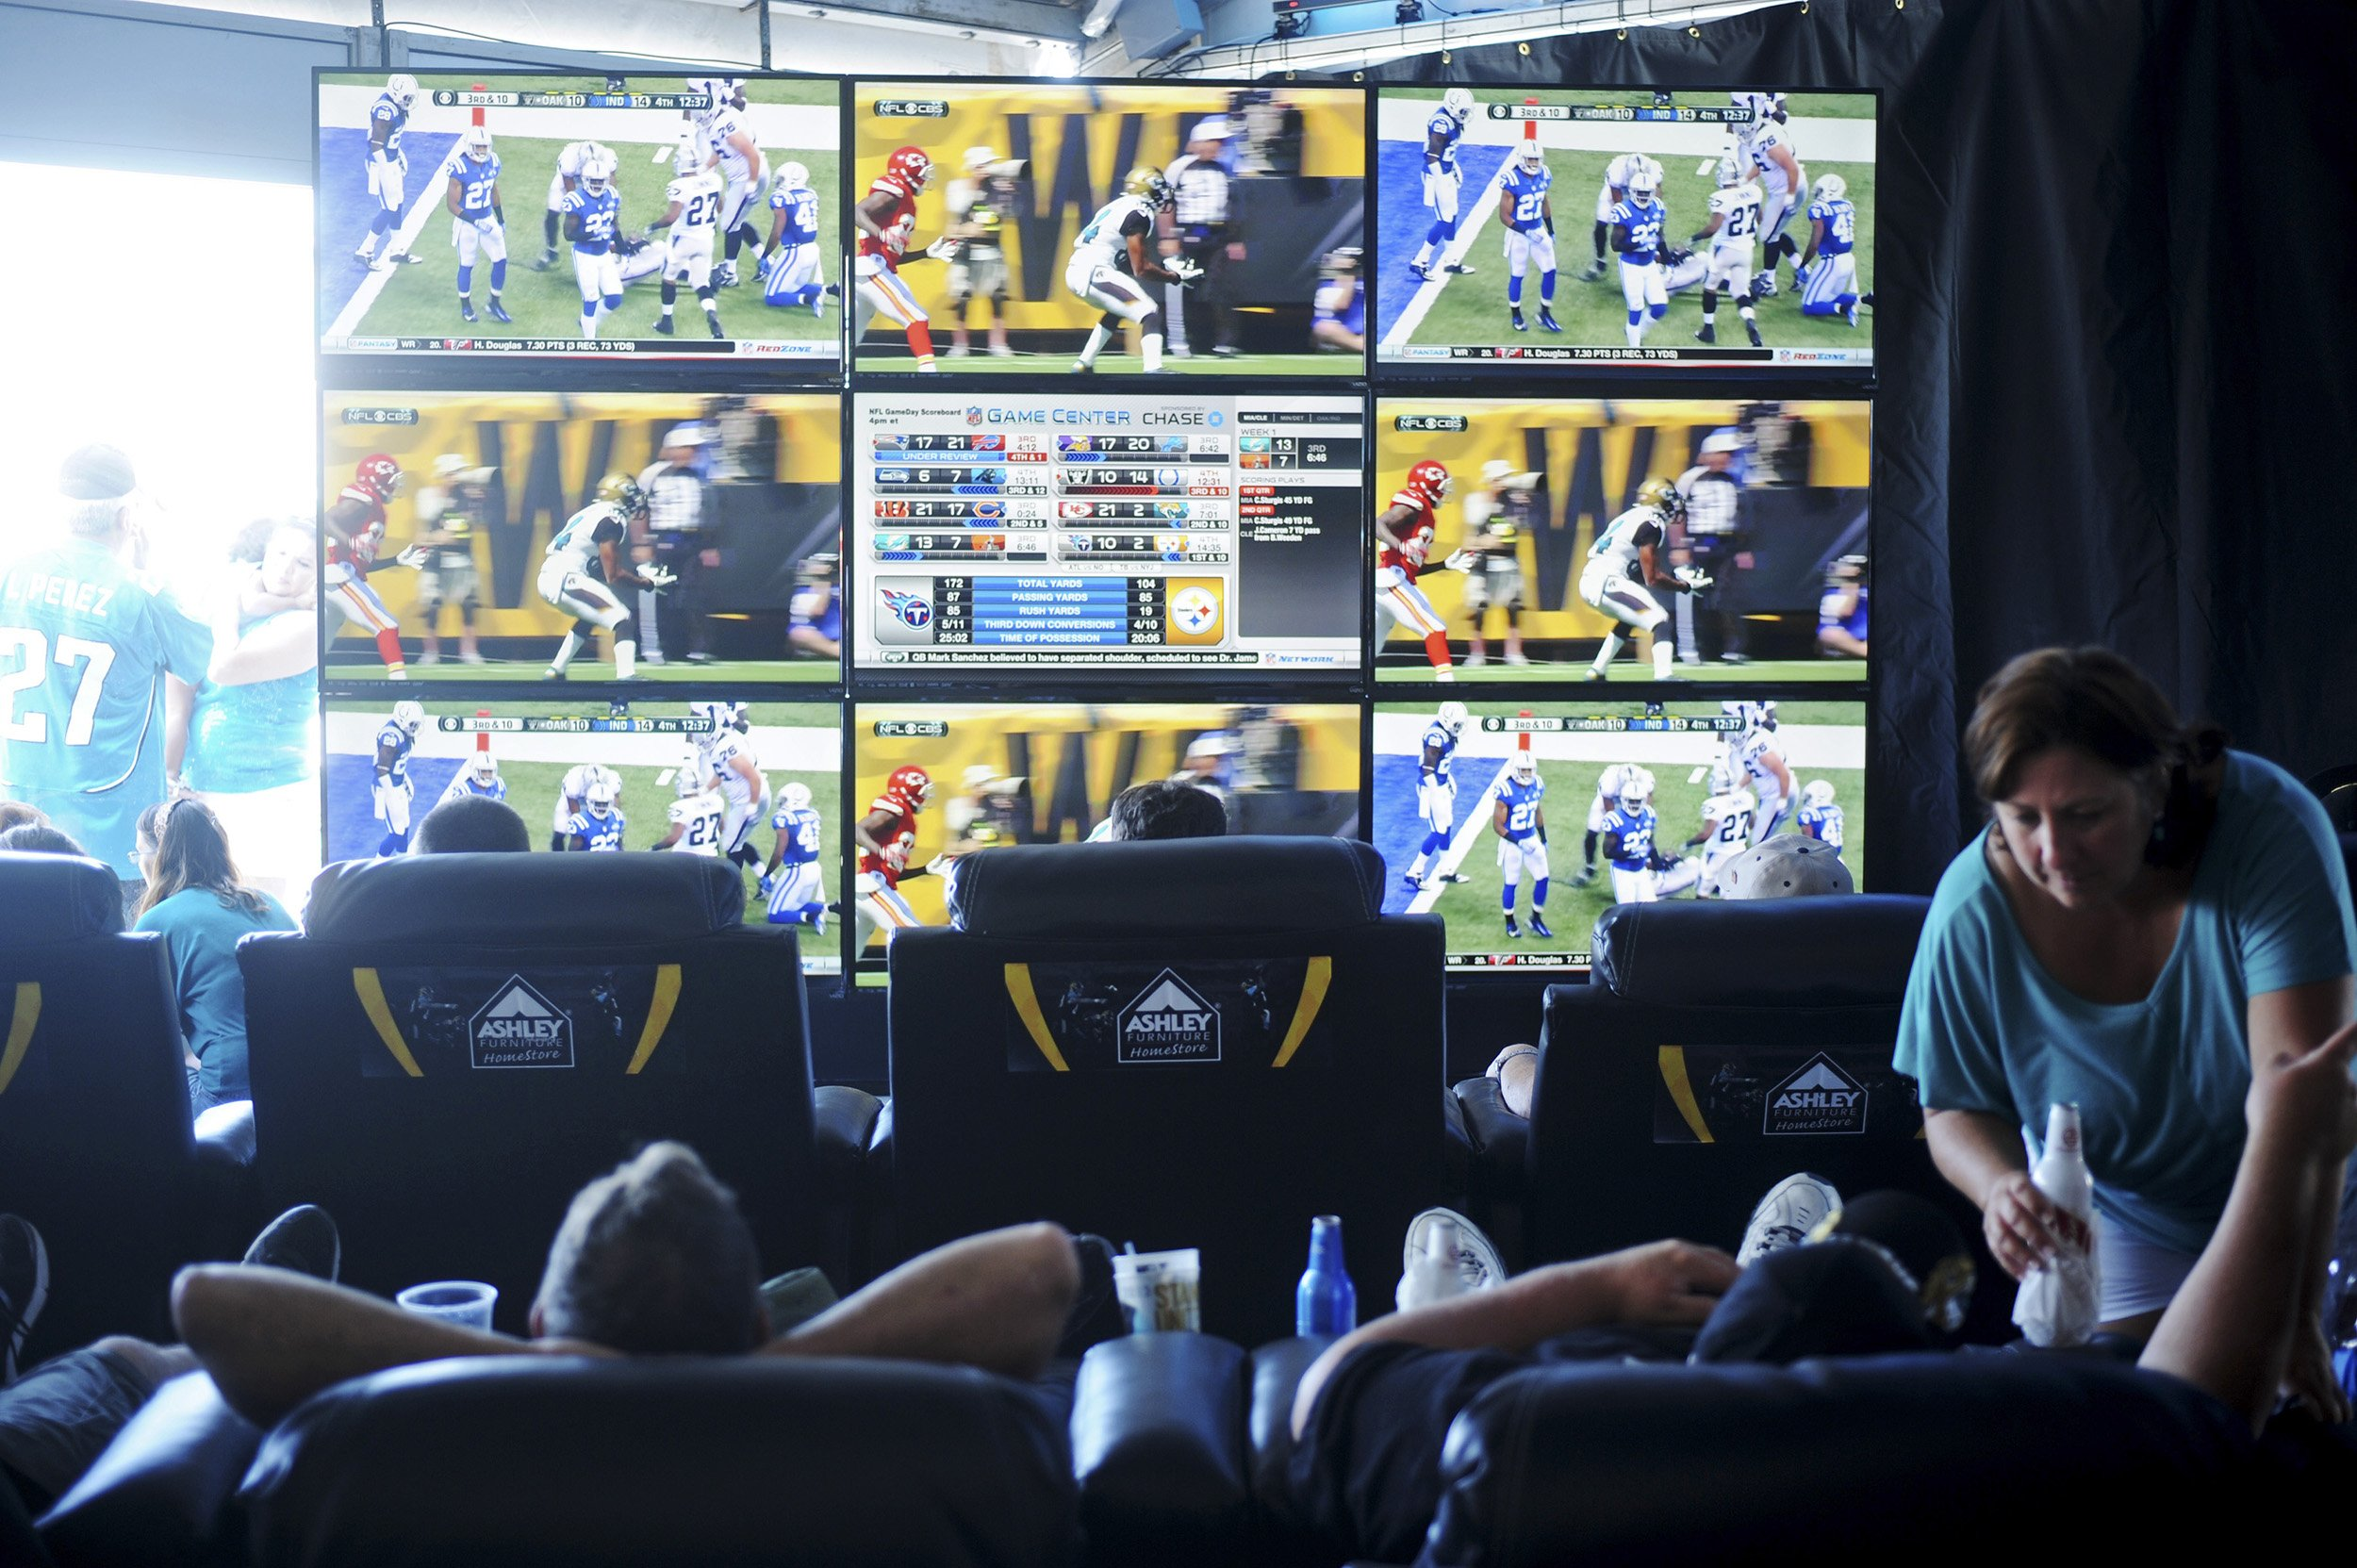 fantasy sports leagues on hgh watch the data explosion